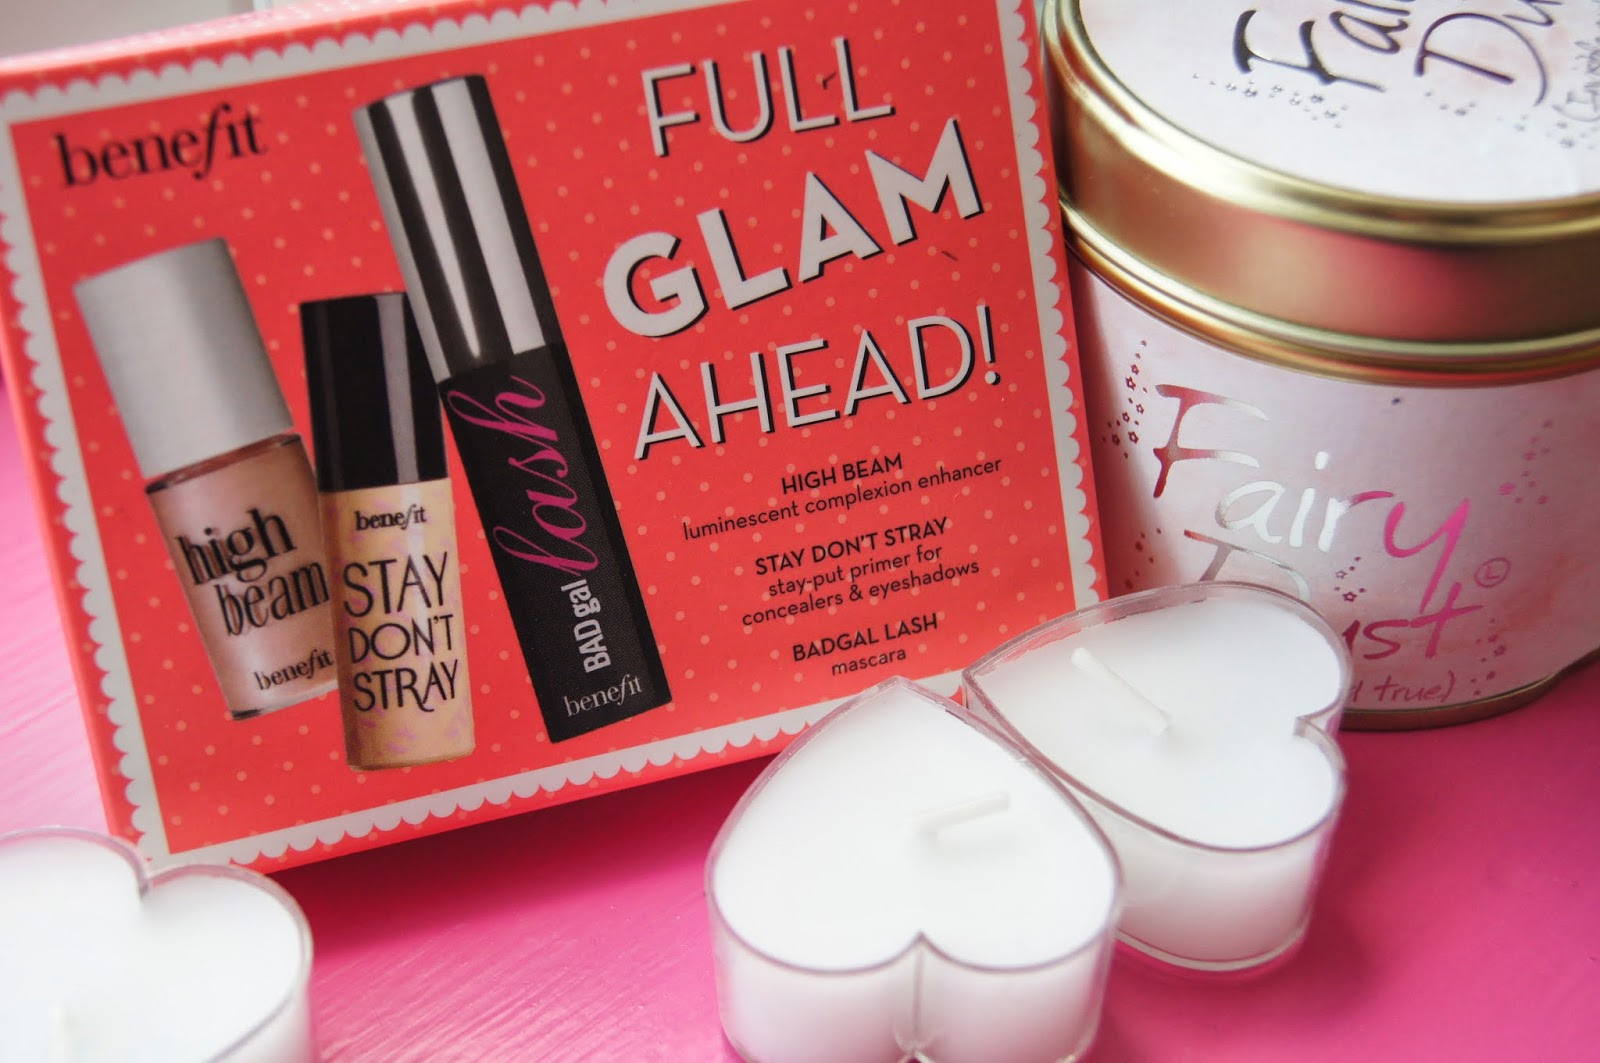 As a birthday gift I received the Benefit u0027Full Glam Aheadu0027 kit which has 3 mini benefit products. They are really tiny but I guess theyu0027re good enough for ... & Benefit u0027Full Glam Aheadu0027 Kit | THE ROSE GLOW